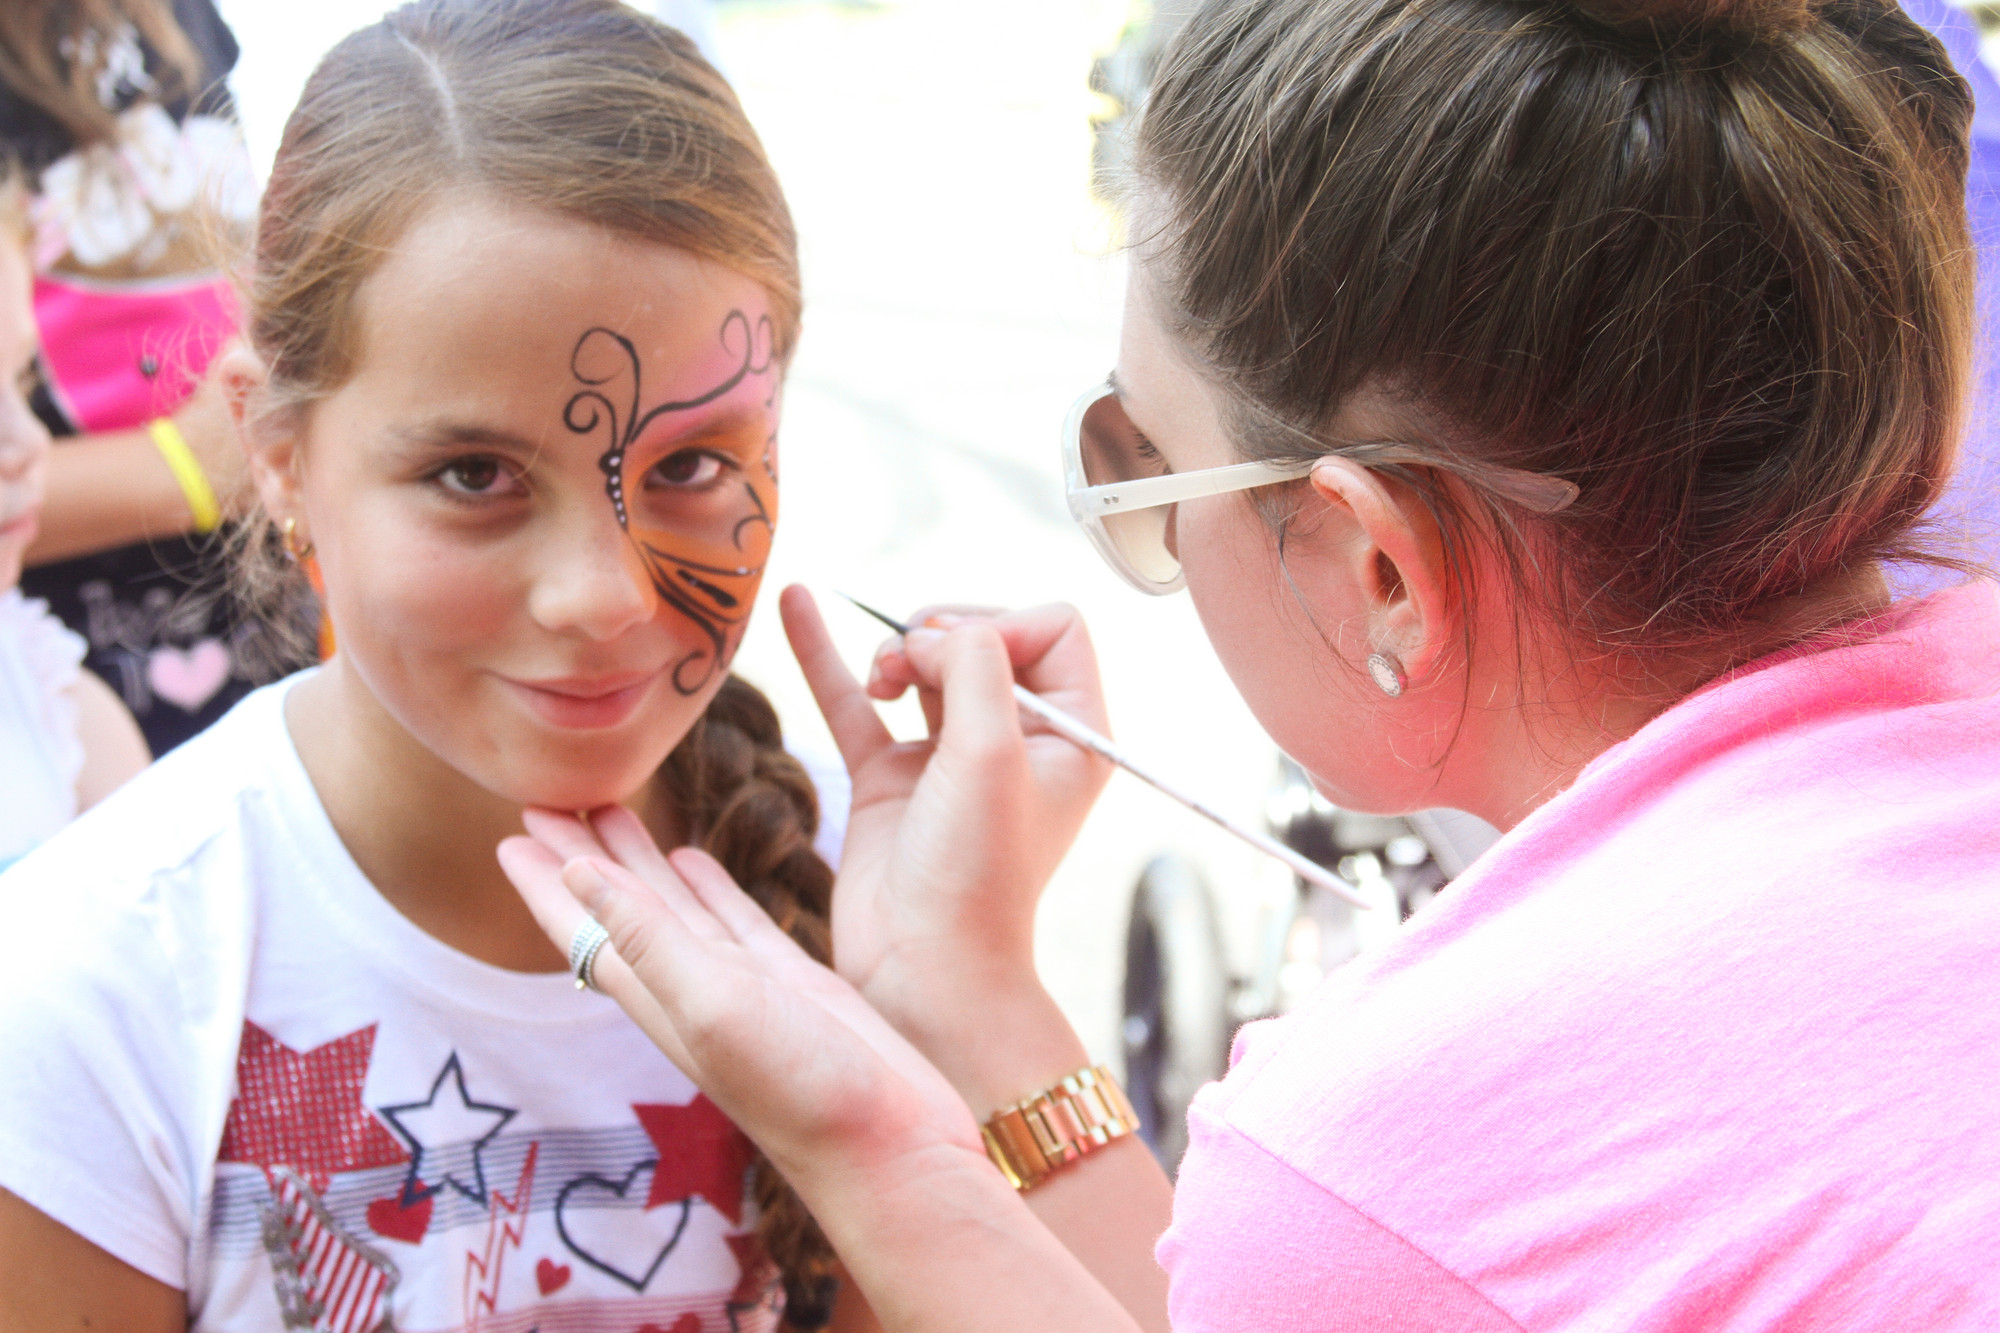 Daniela Andrade, 9, got her face painted by Briana C. from Twinkle Town.